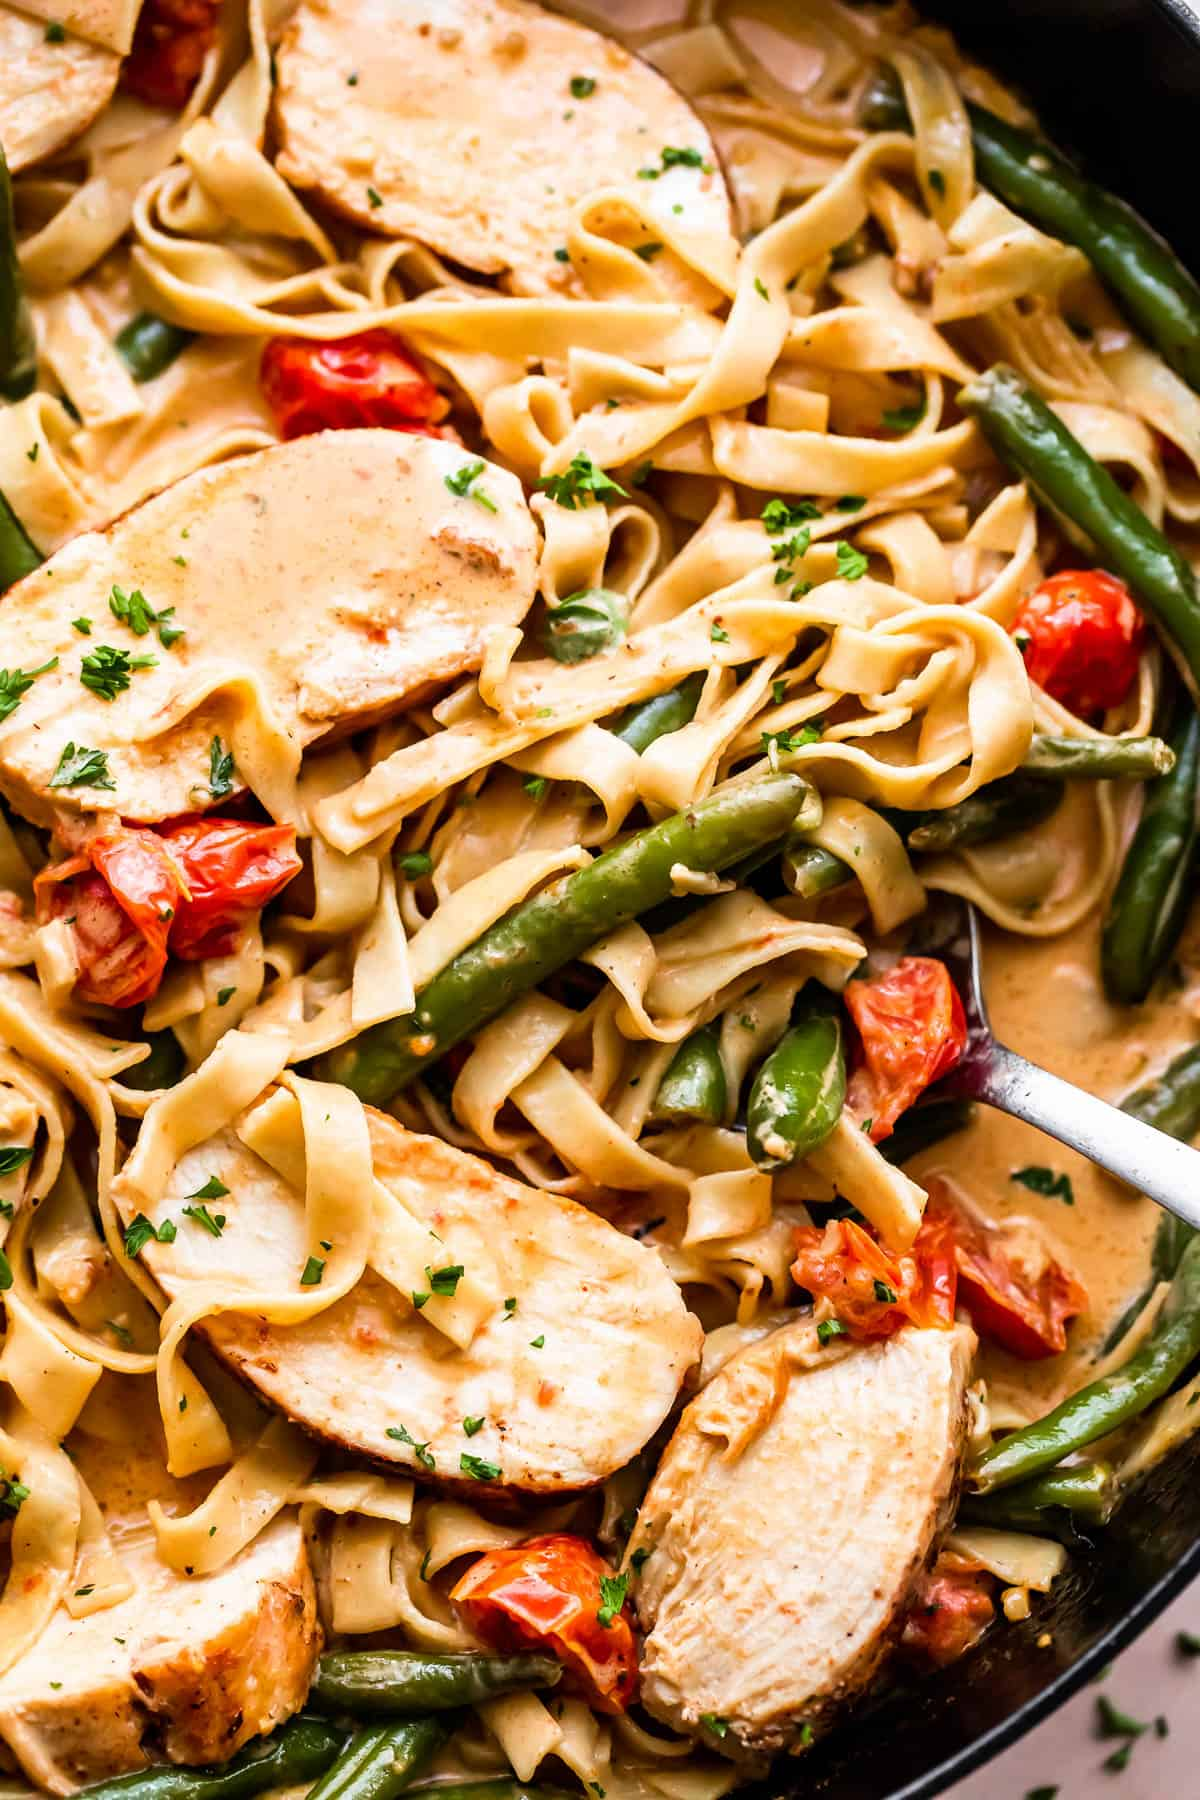 fettuccine pasta in creamy sauce with slices of blackened chicken, tomatoes, and green beans